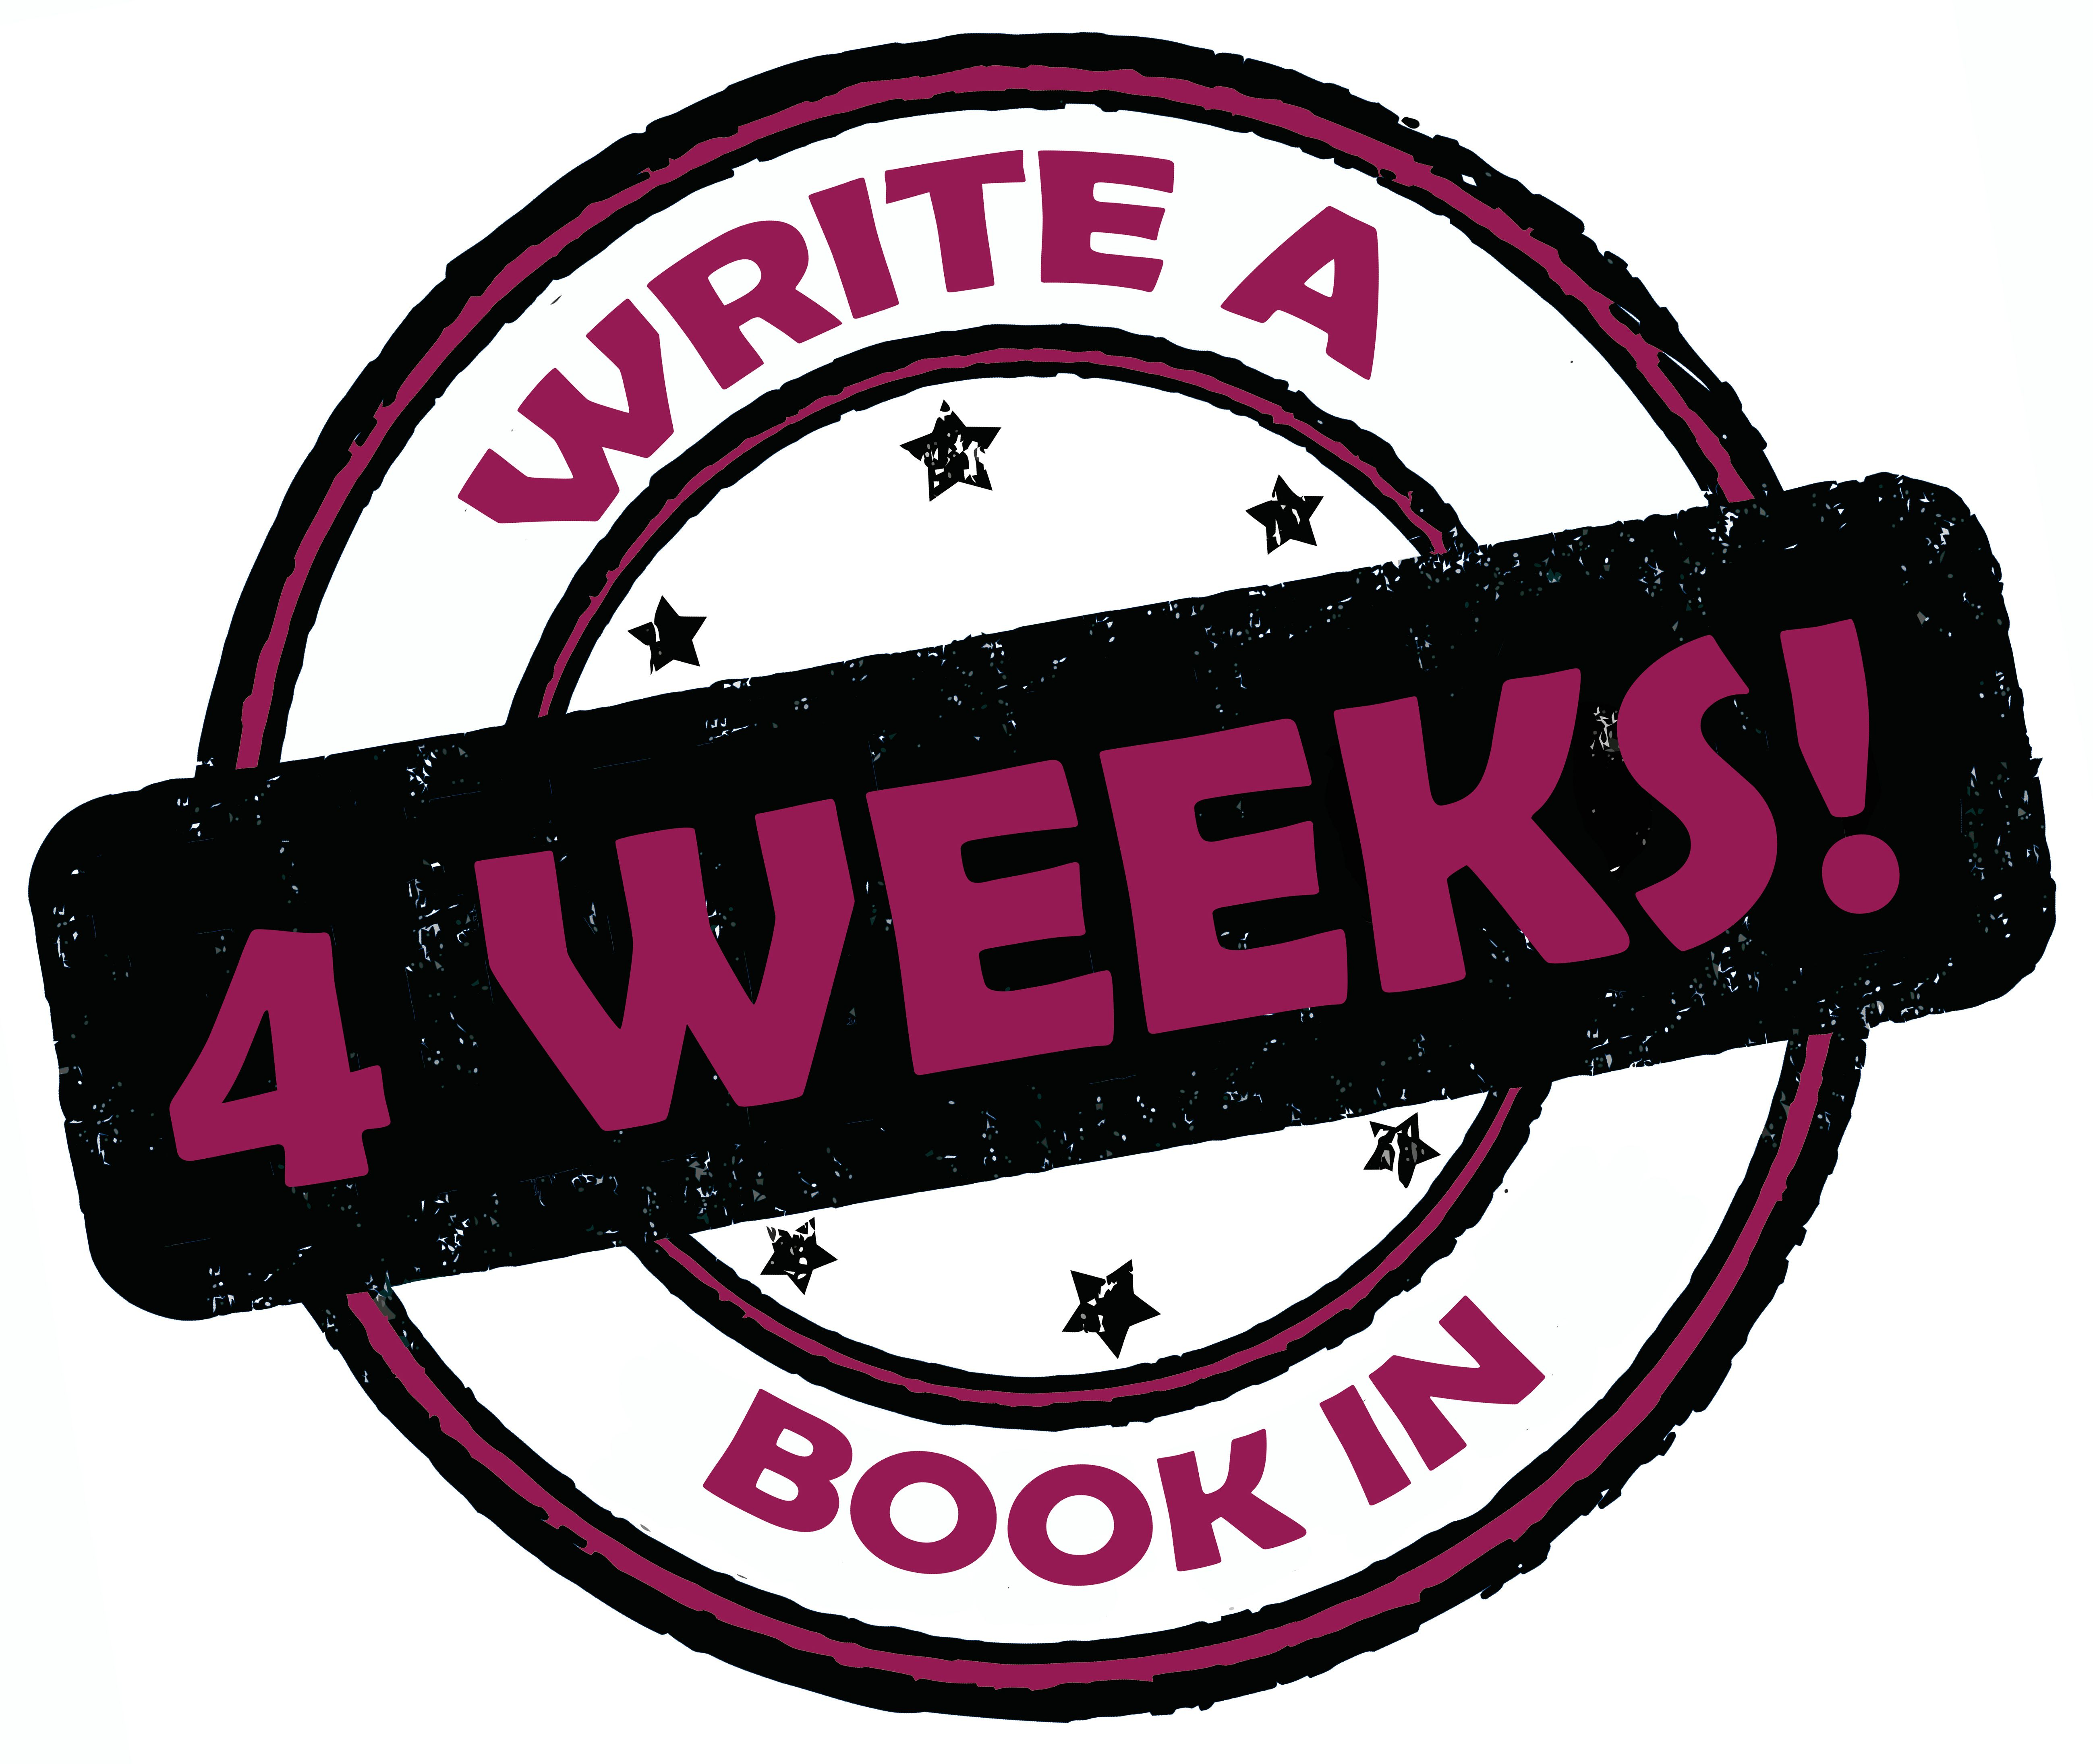 Yes you can write a book in 4 weeks! Come to our workshop & find how! http://richterpublishing.com/services/workshops/